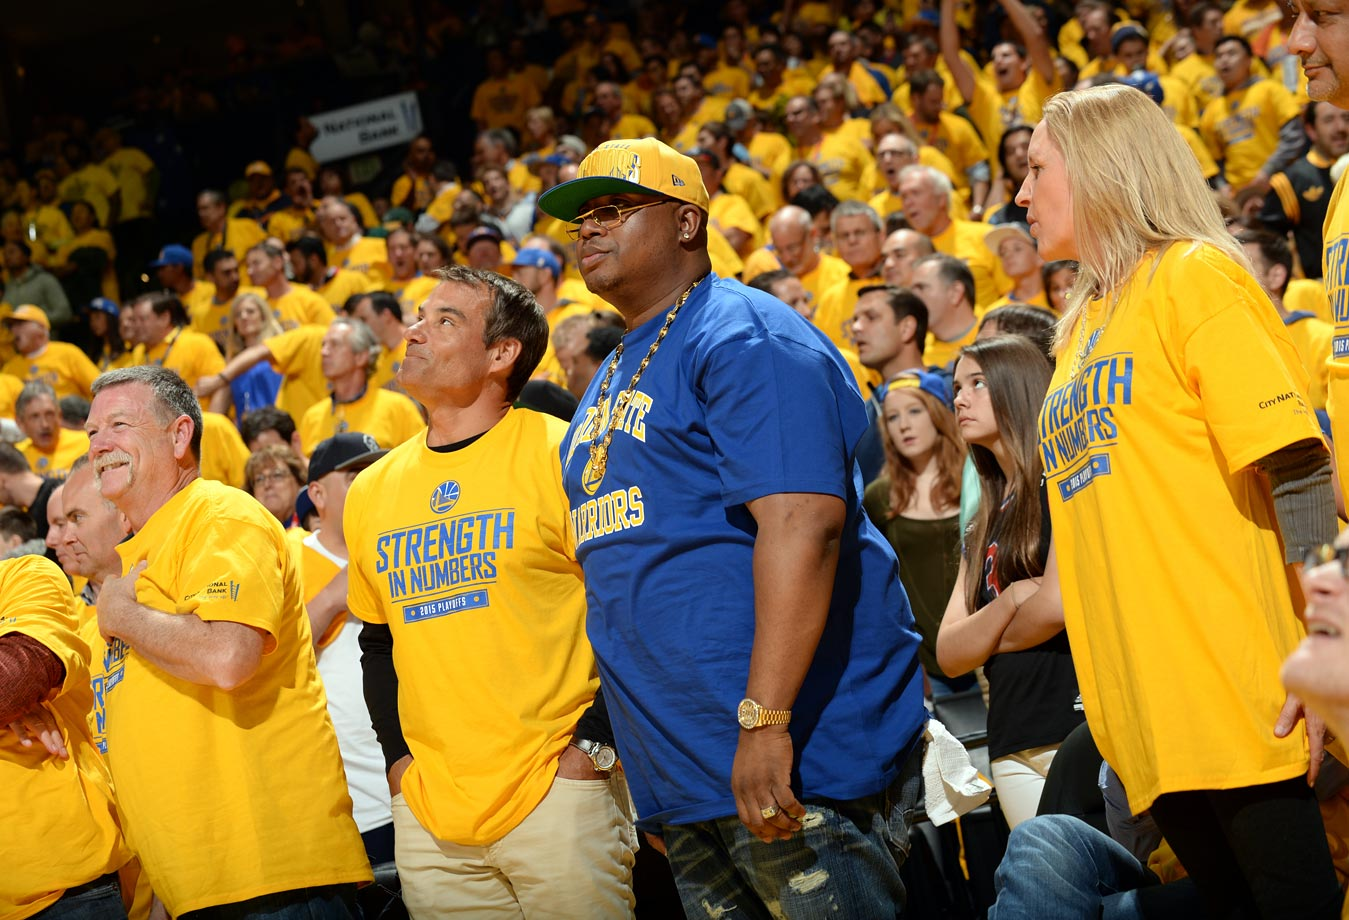 April 20, 2015: Golden State Warriors vs. New Orleans Pelicans at ORACLE Arena in Oakland, Calif. — Western Conference Quarterfinals, Game 2